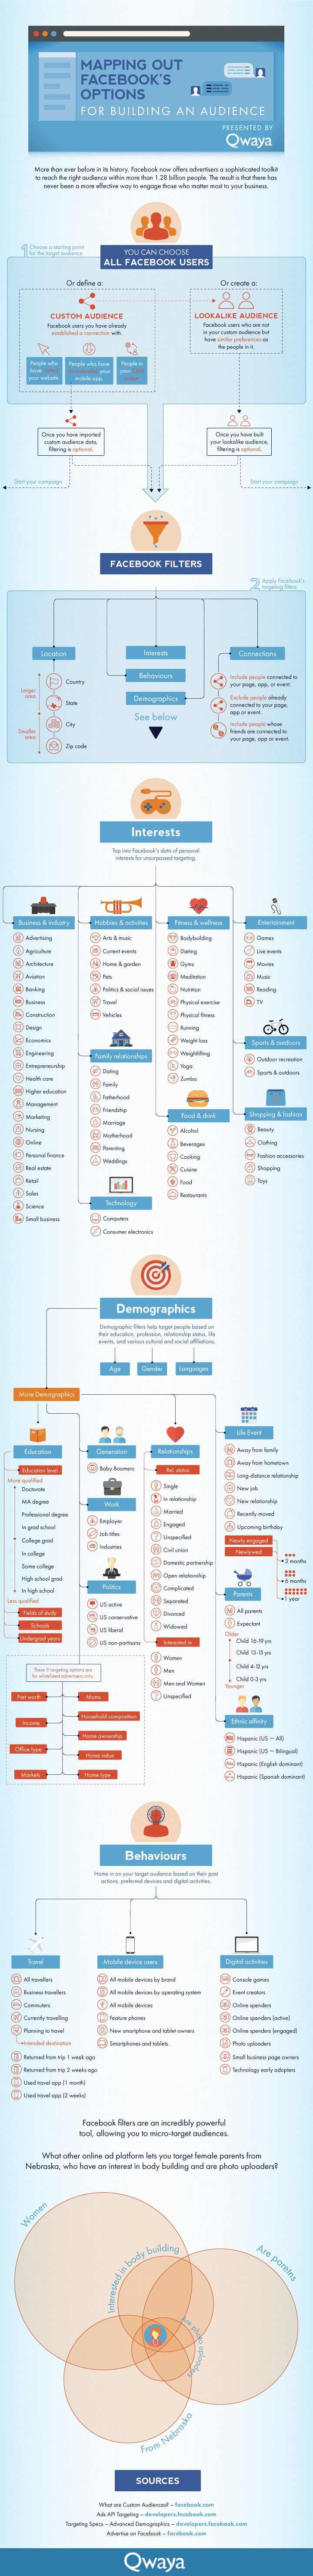 Learn how to Find your business's audience on #Facebook   - #socialmedia #infographic